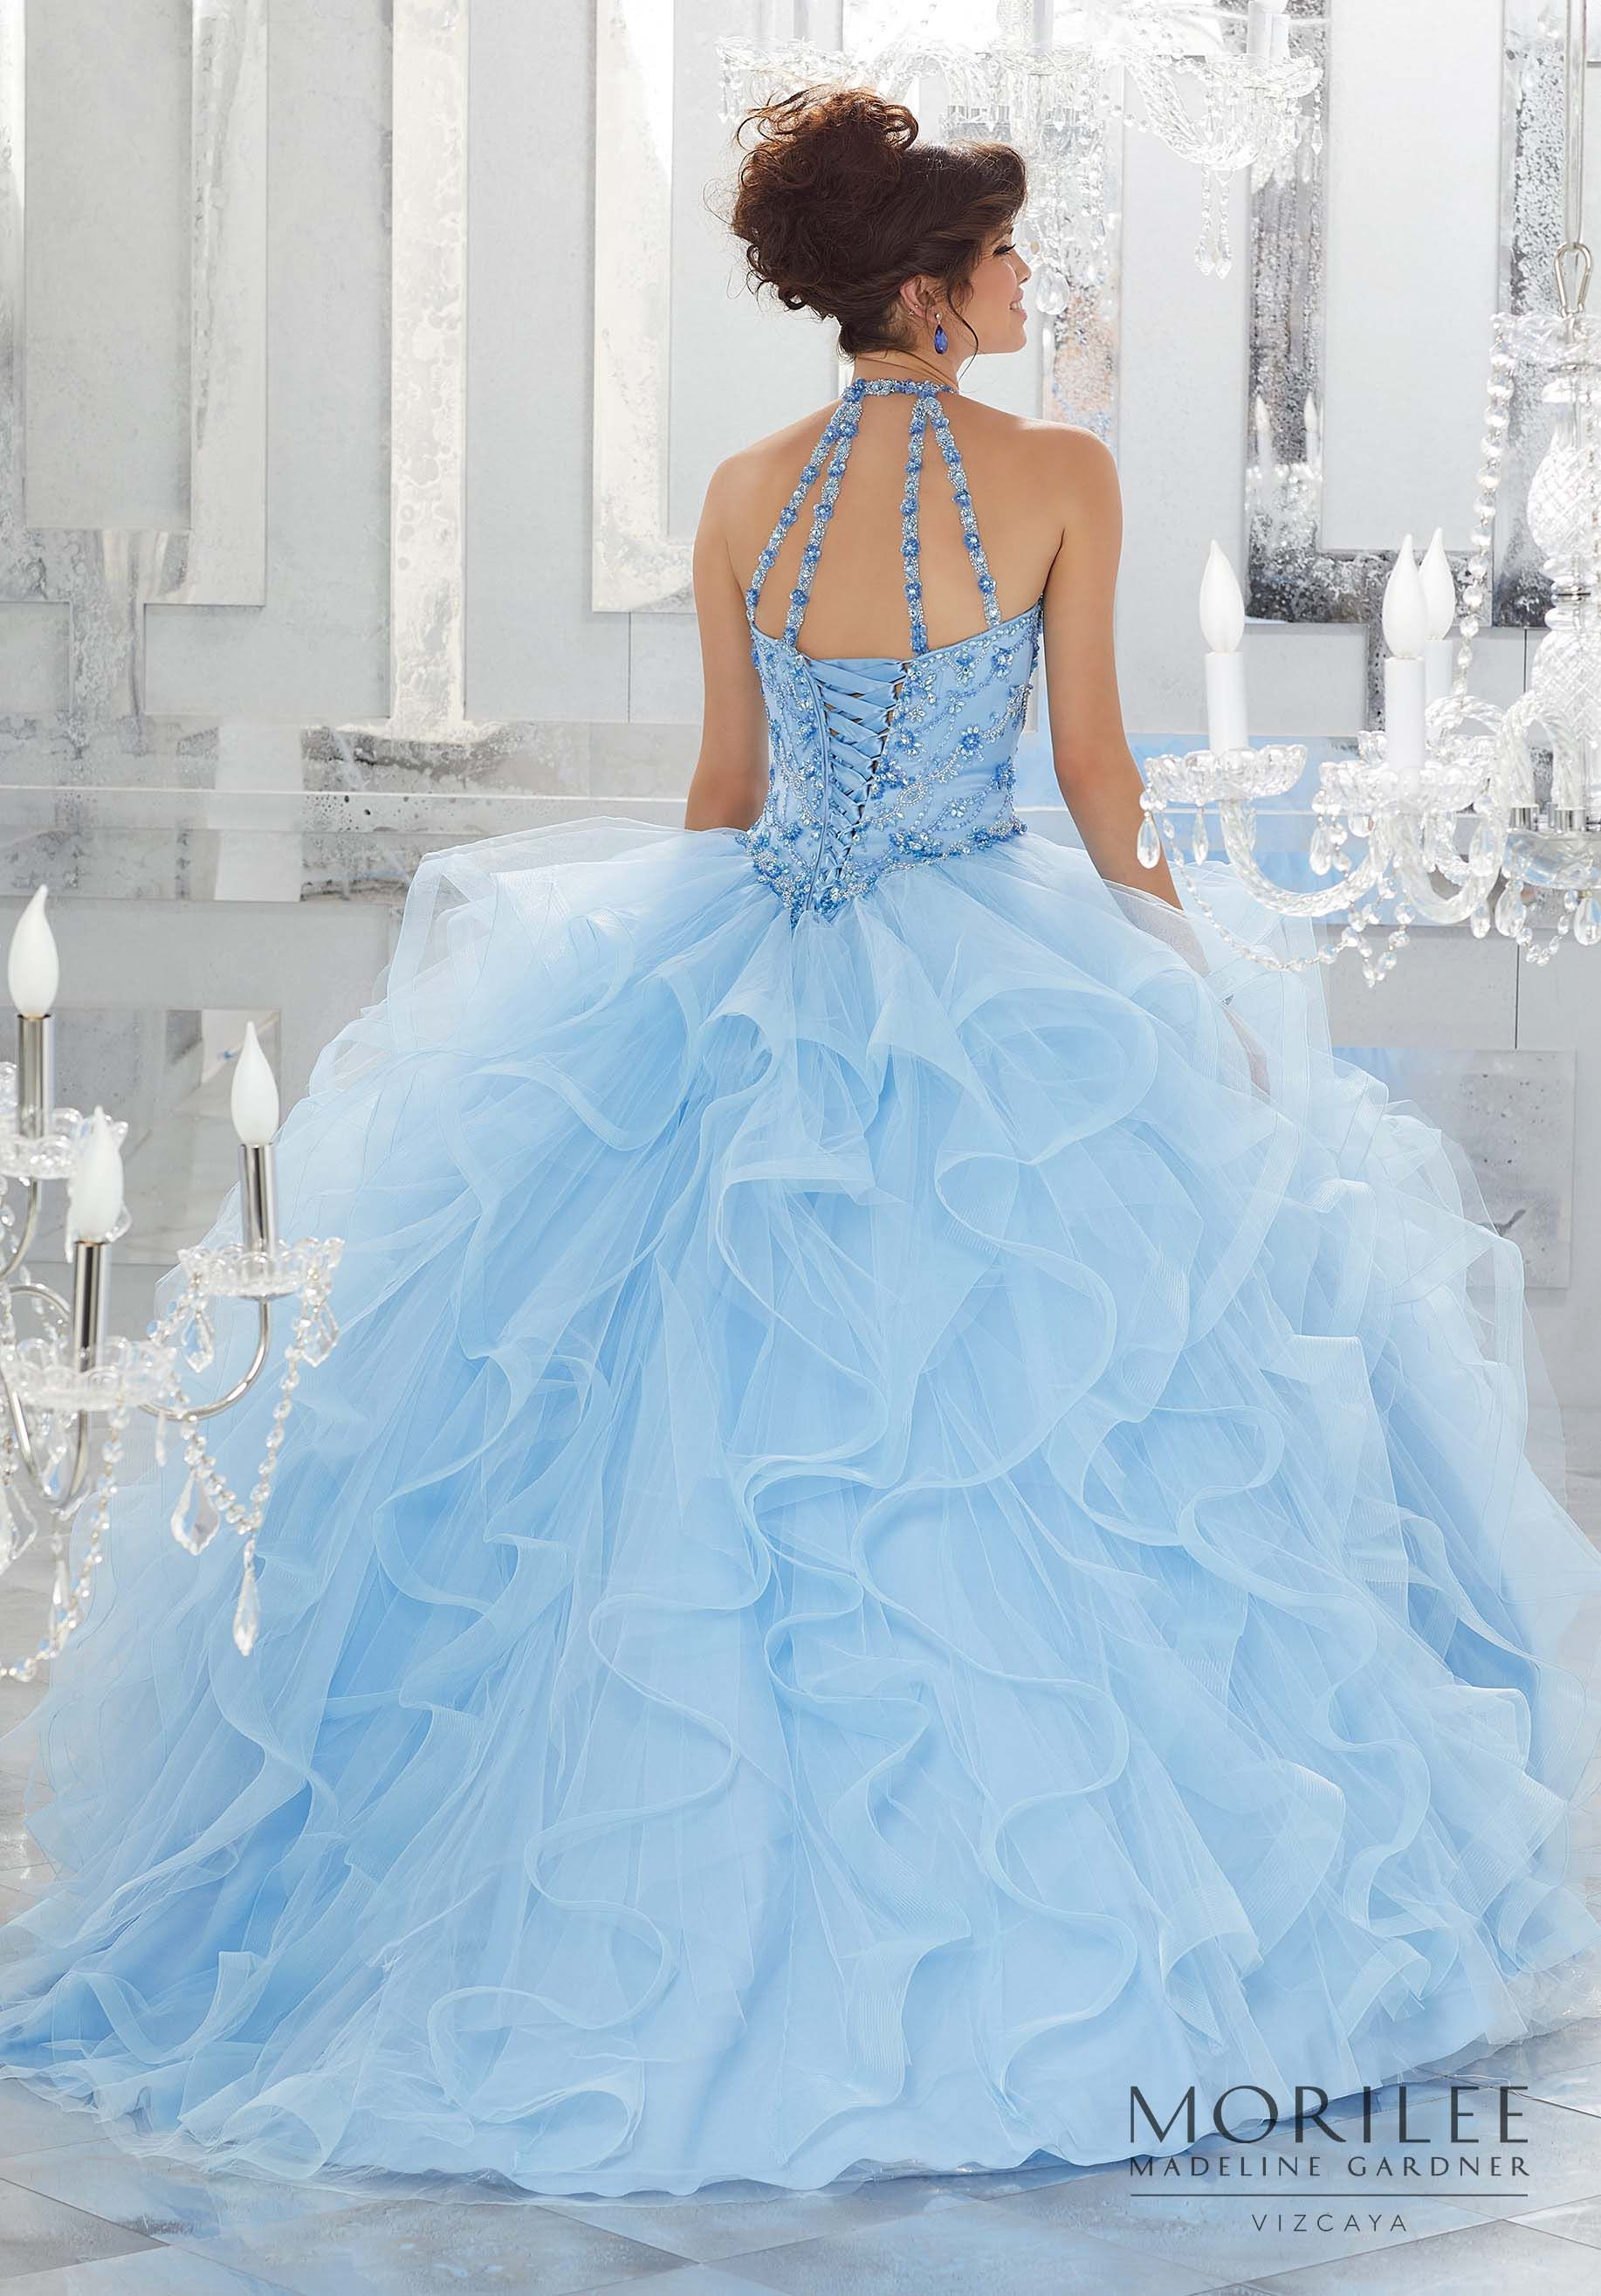 Blue Cinderella Tulle Princess Ball Gown Quinceañera Dress Featuring ...